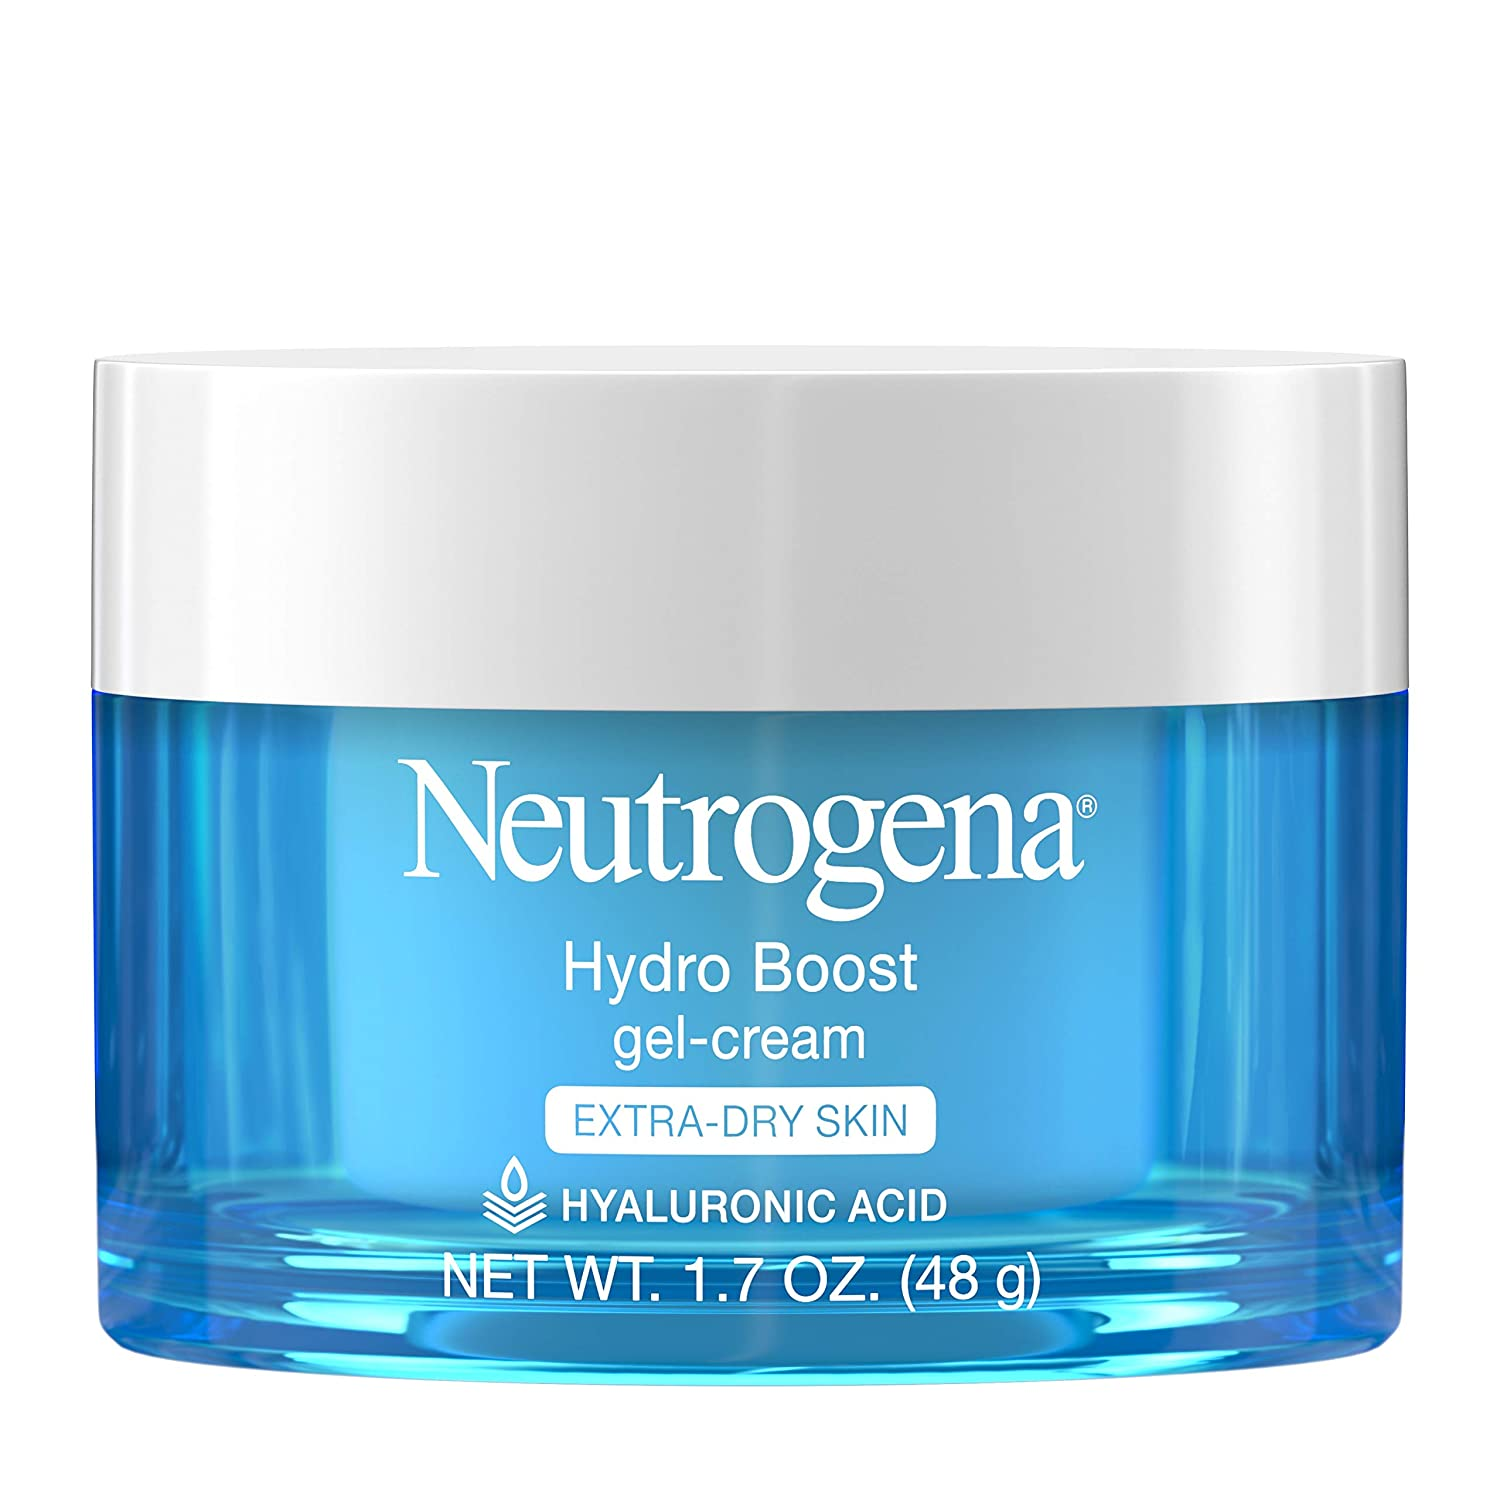 Neutrogena Hydro Boost Hyaluronic Acid Hydrating Gel-Cream Face Moisturizer to Hydrate & Smooth Extra-Dry Skin, Oil-Free, Fragrance-Free, Non-Comedogenic & Dye-Free Face Lotion, 1.7 oz: Beauty